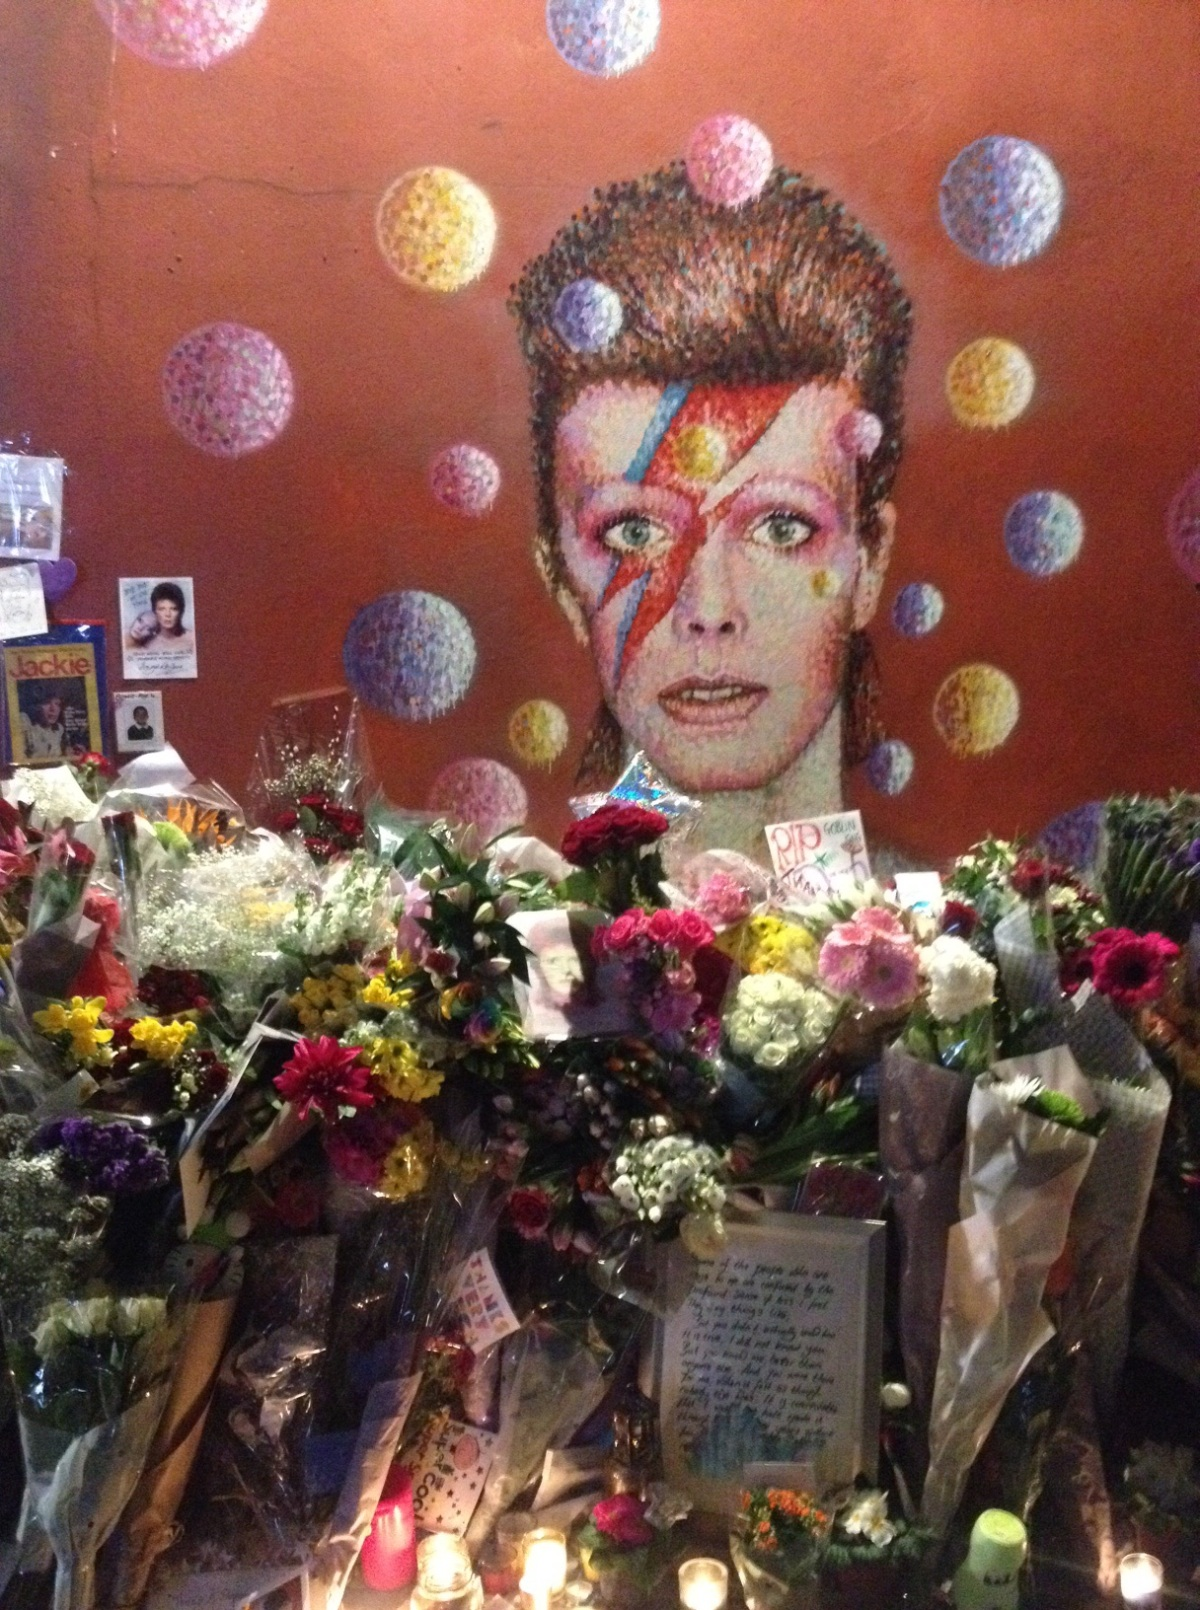 Brixton Bids farewell to Bowie